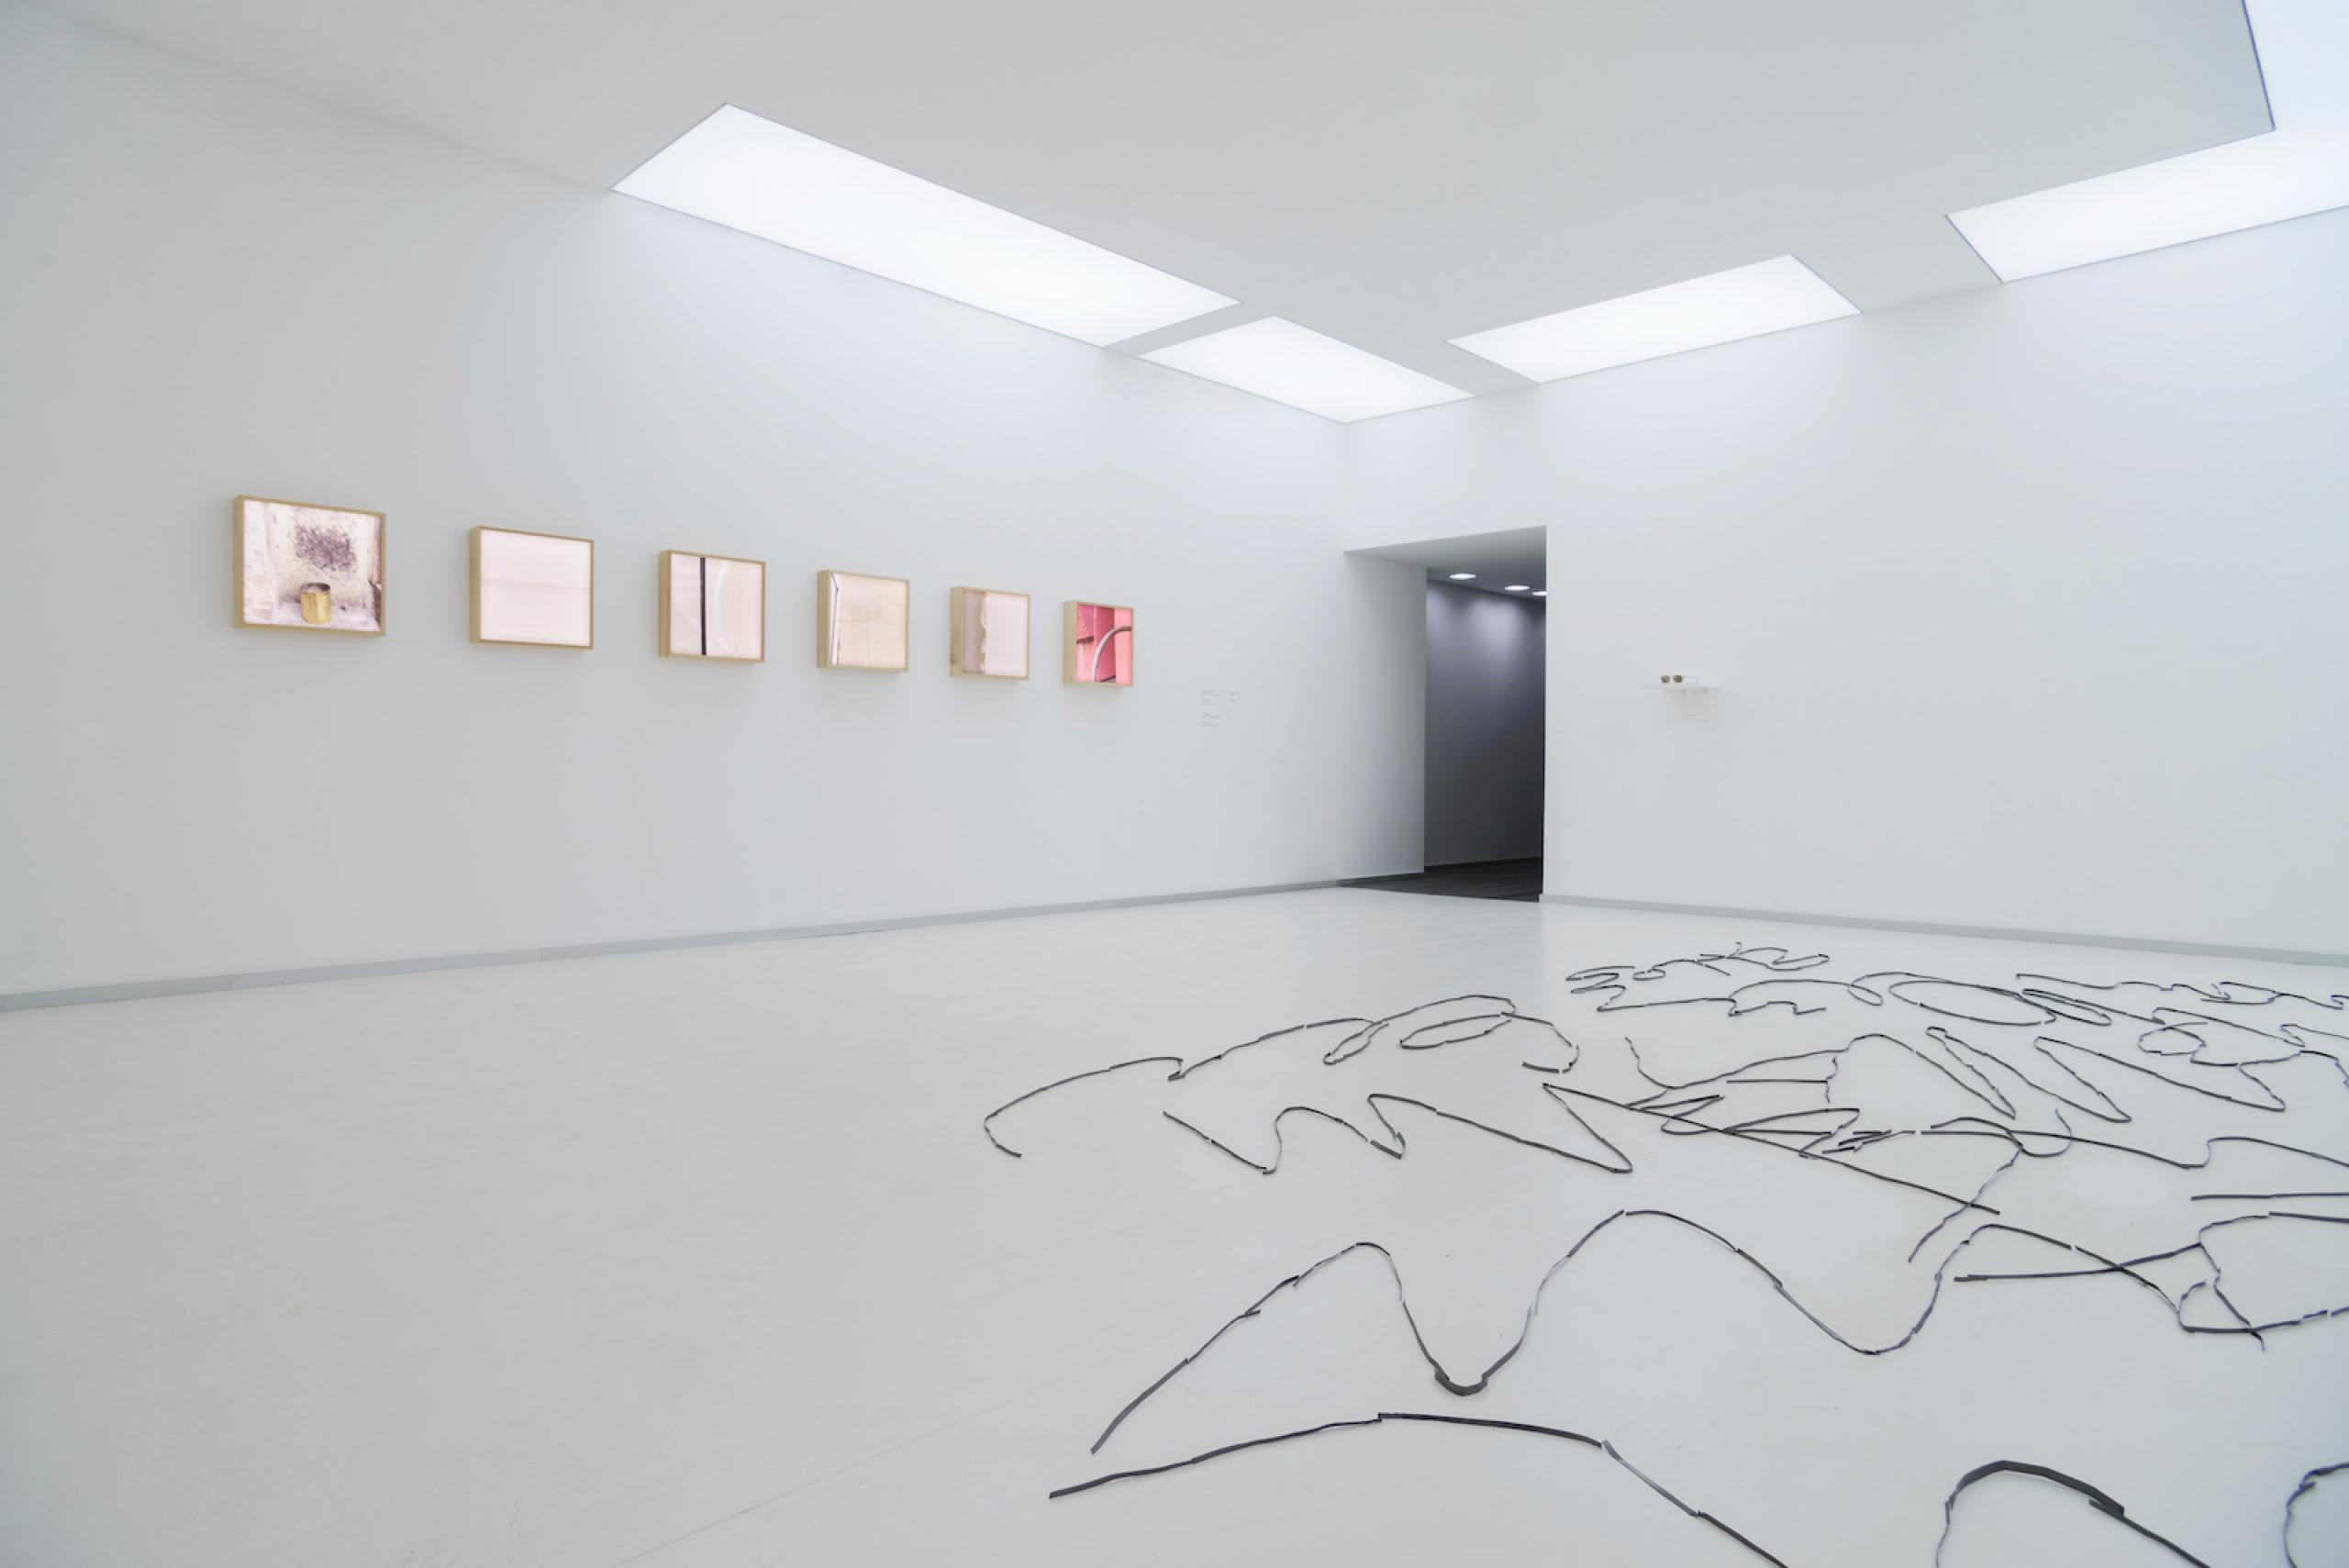 Anna Zvyagintseva Scratches (2018) Installation view of the exhibition of the shortlisted artists for the PinchukArtCentre Prize 2018